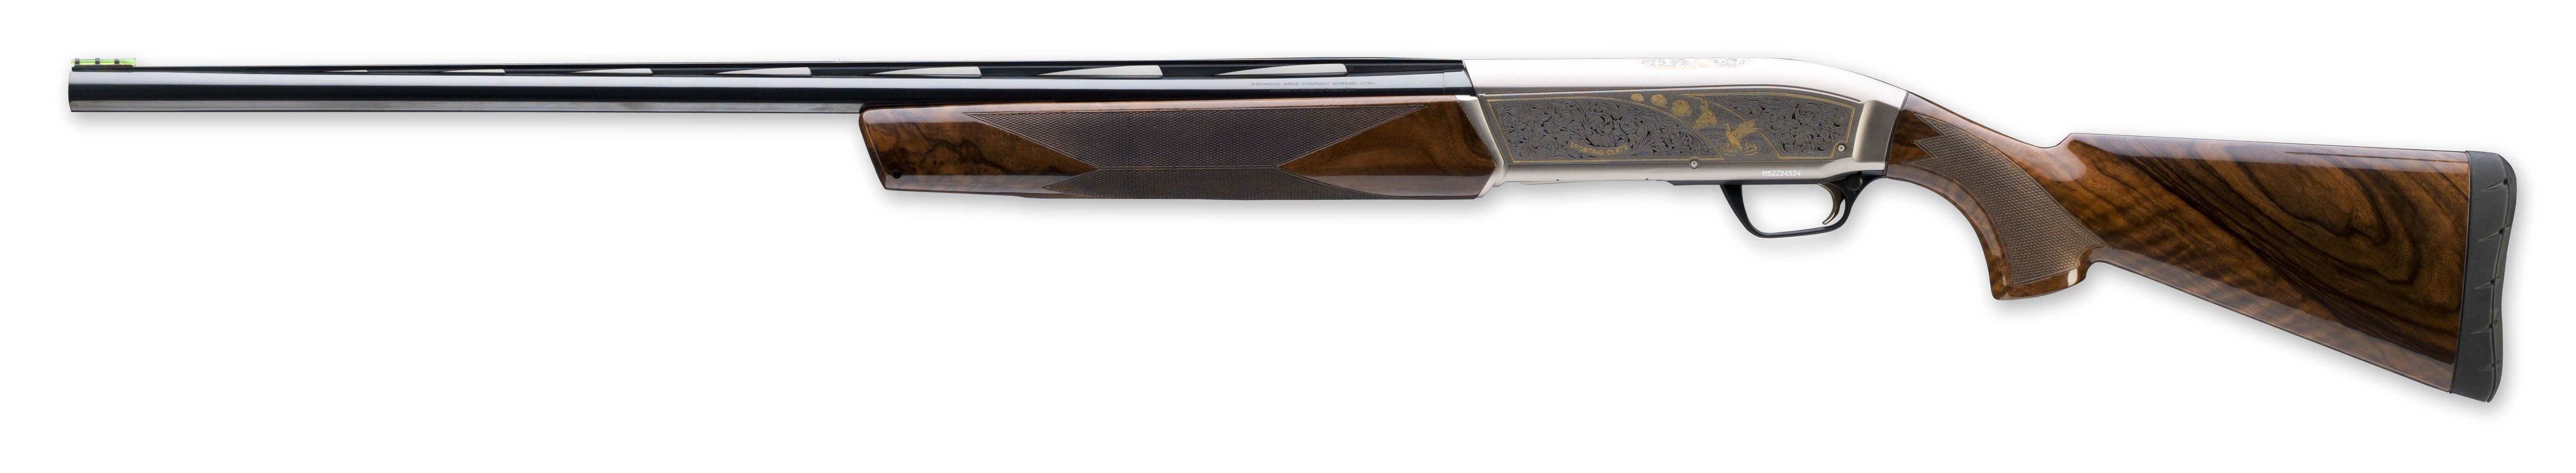 maxus sporting golden clays rh browning com Browning Maxus Duck Blind Browning Maxus Max 5